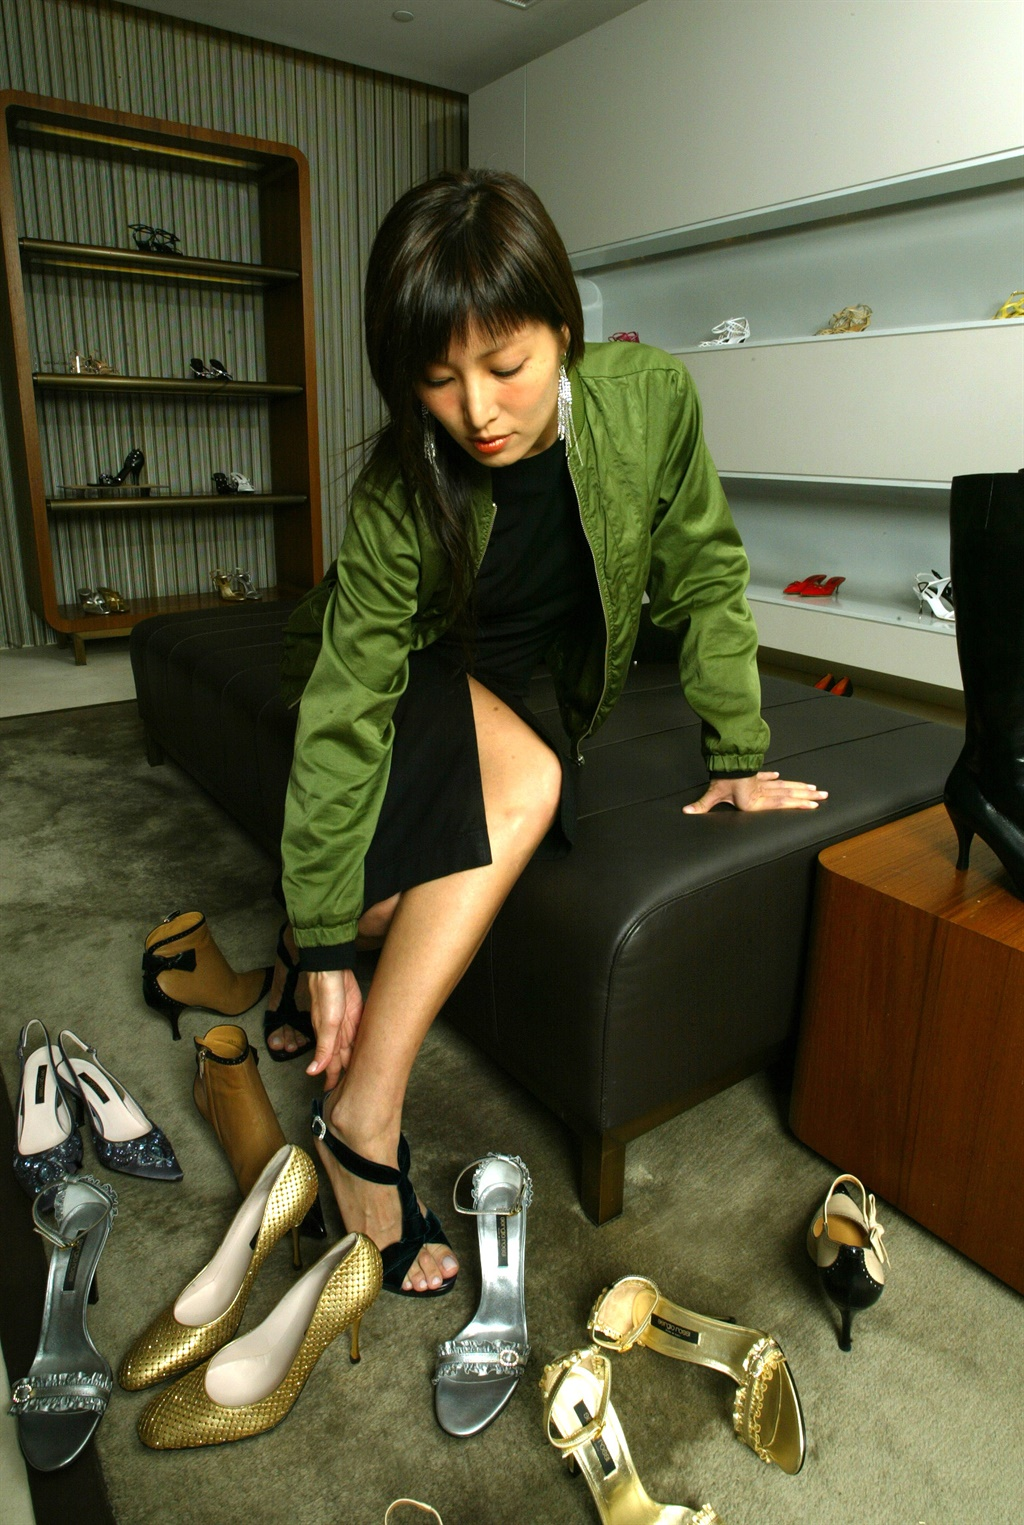 Valerie Chow Kar-ling at Sergio Rossi shoe shop in